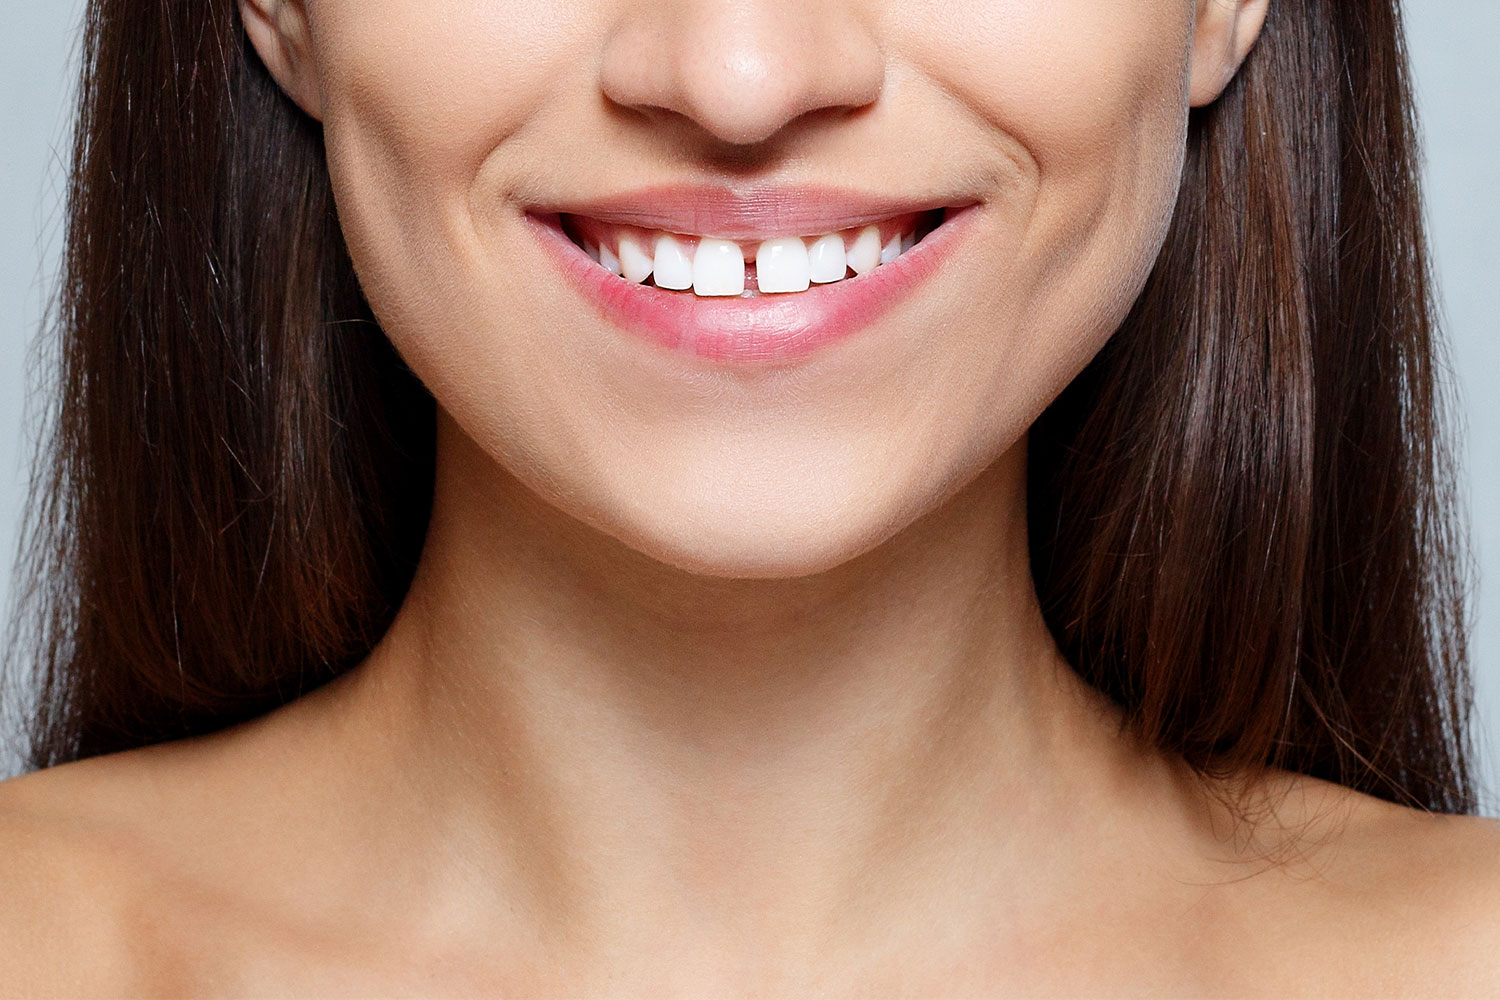 Fix A Tooth Gap: How To Treat Diastema